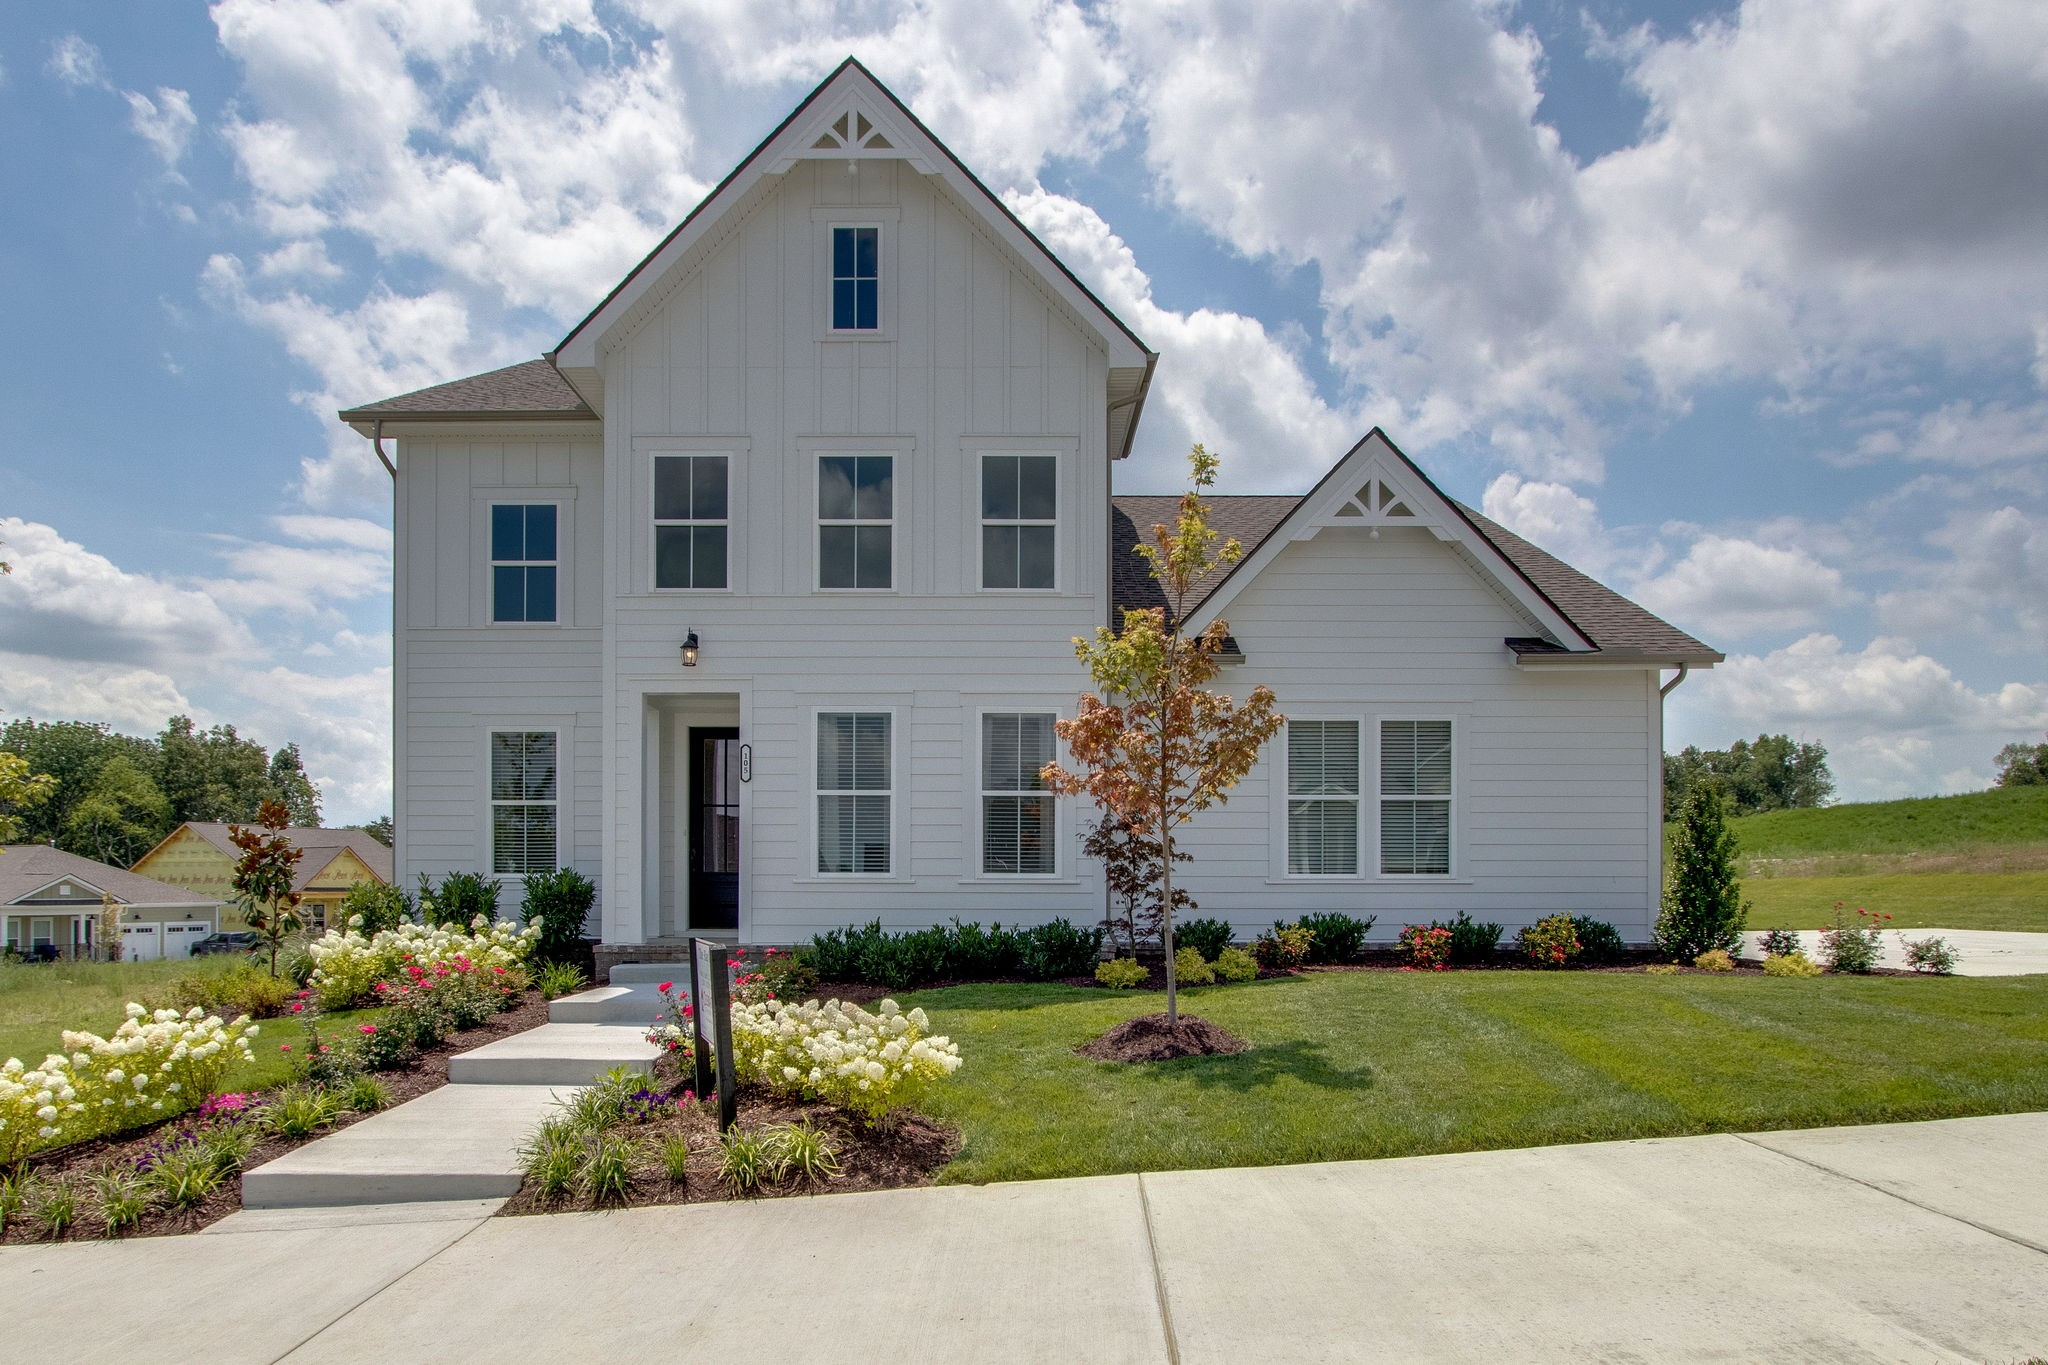 7044 Vineyard Valley Dr, College Grove, TN 37046 - College Grove, TN real estate listing